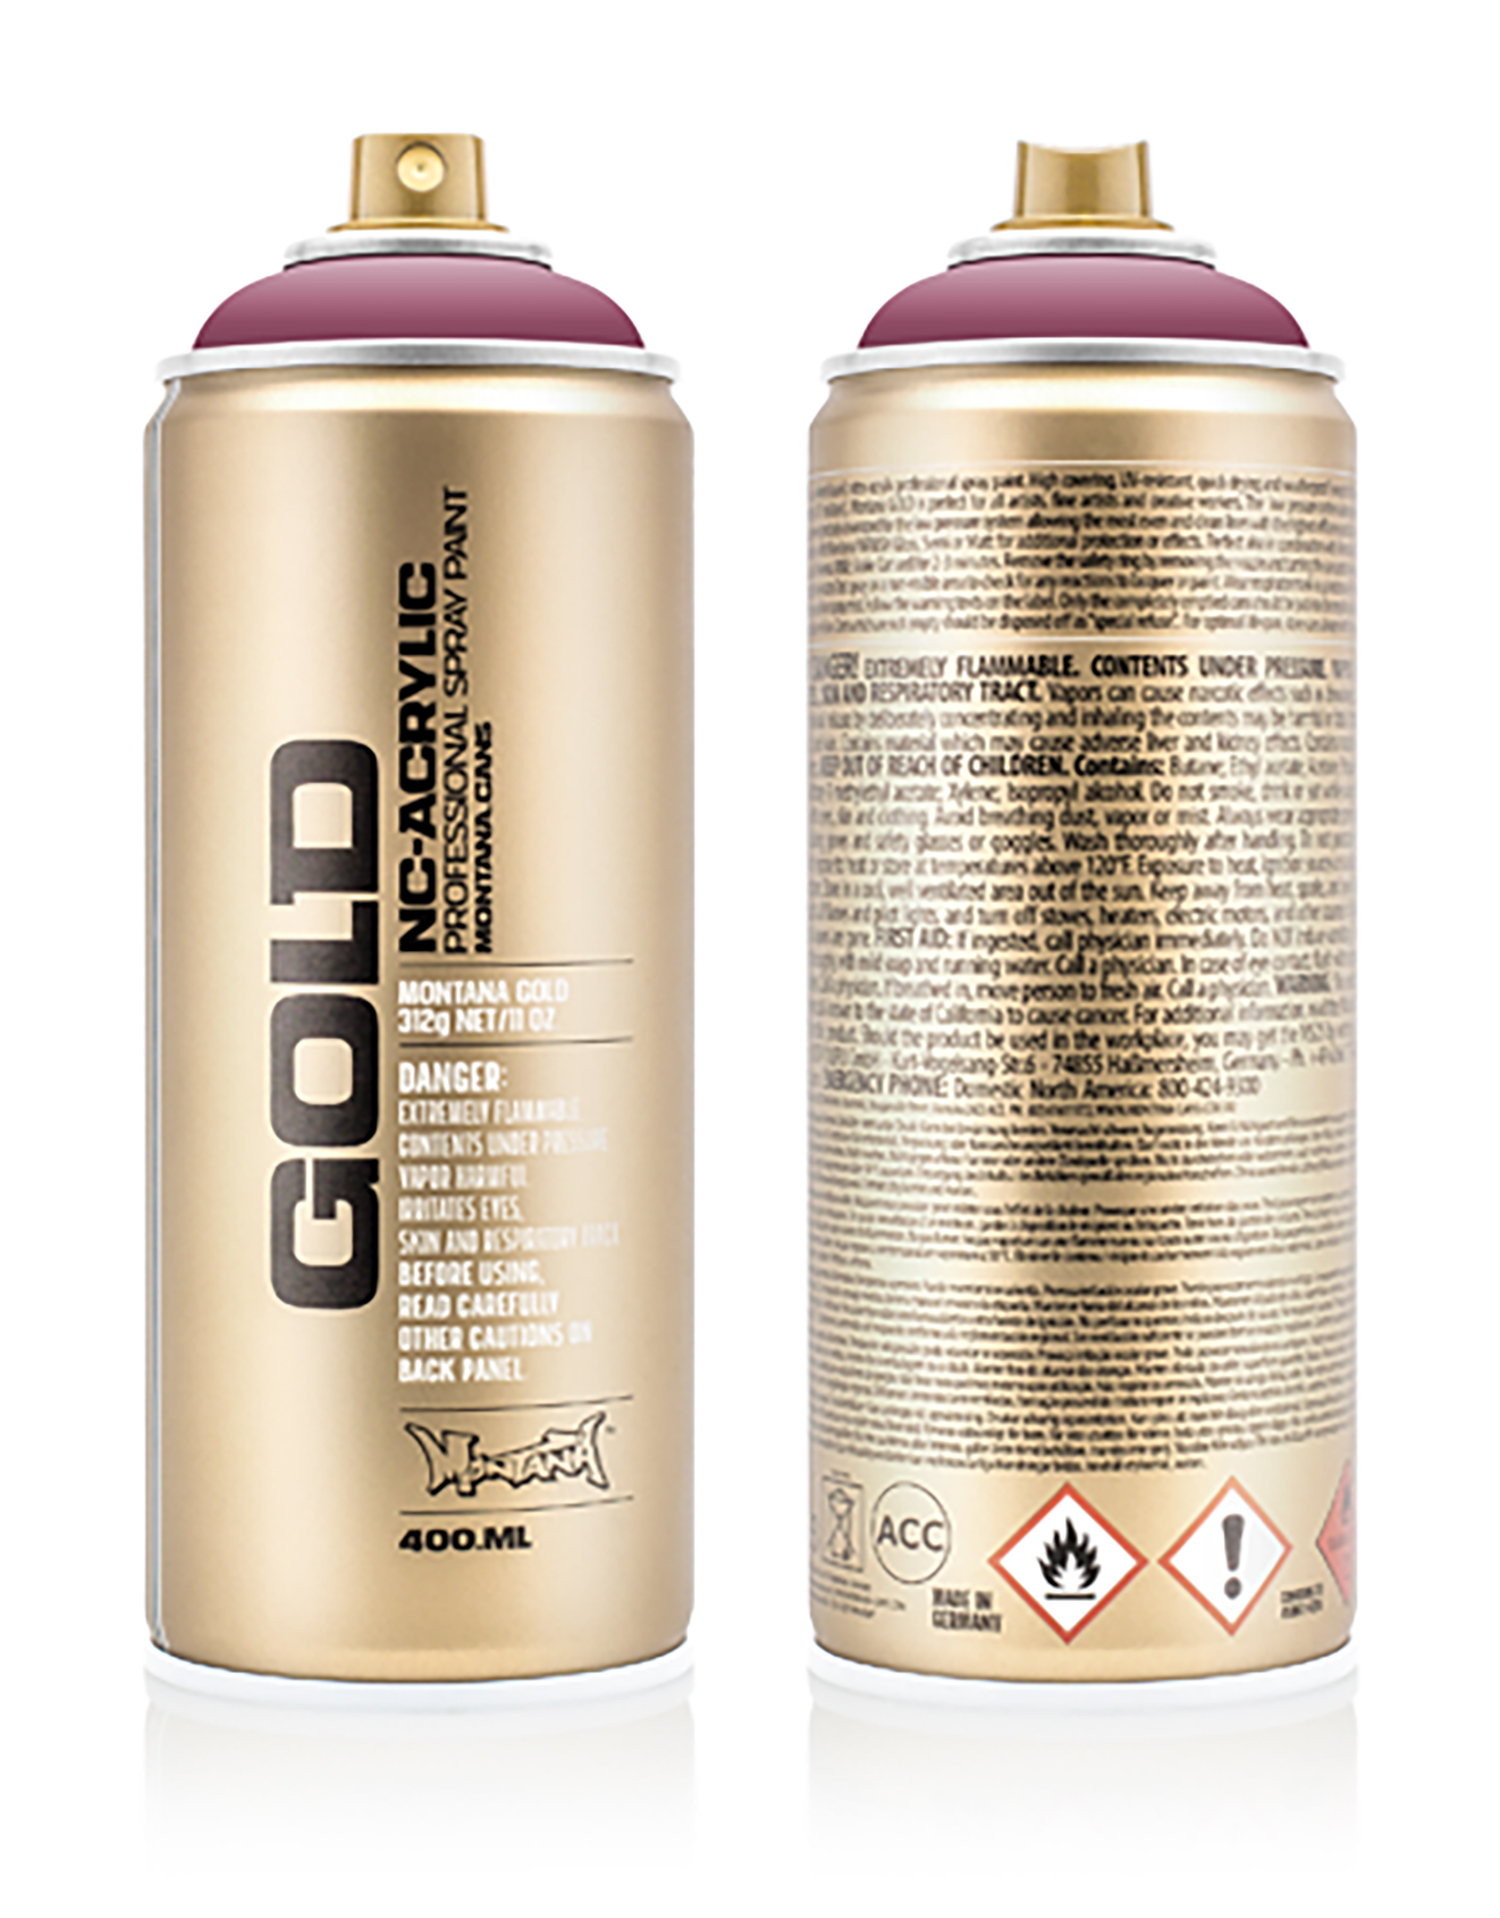 MONTANA-GOLD-SPRAY-400ML-G-4020